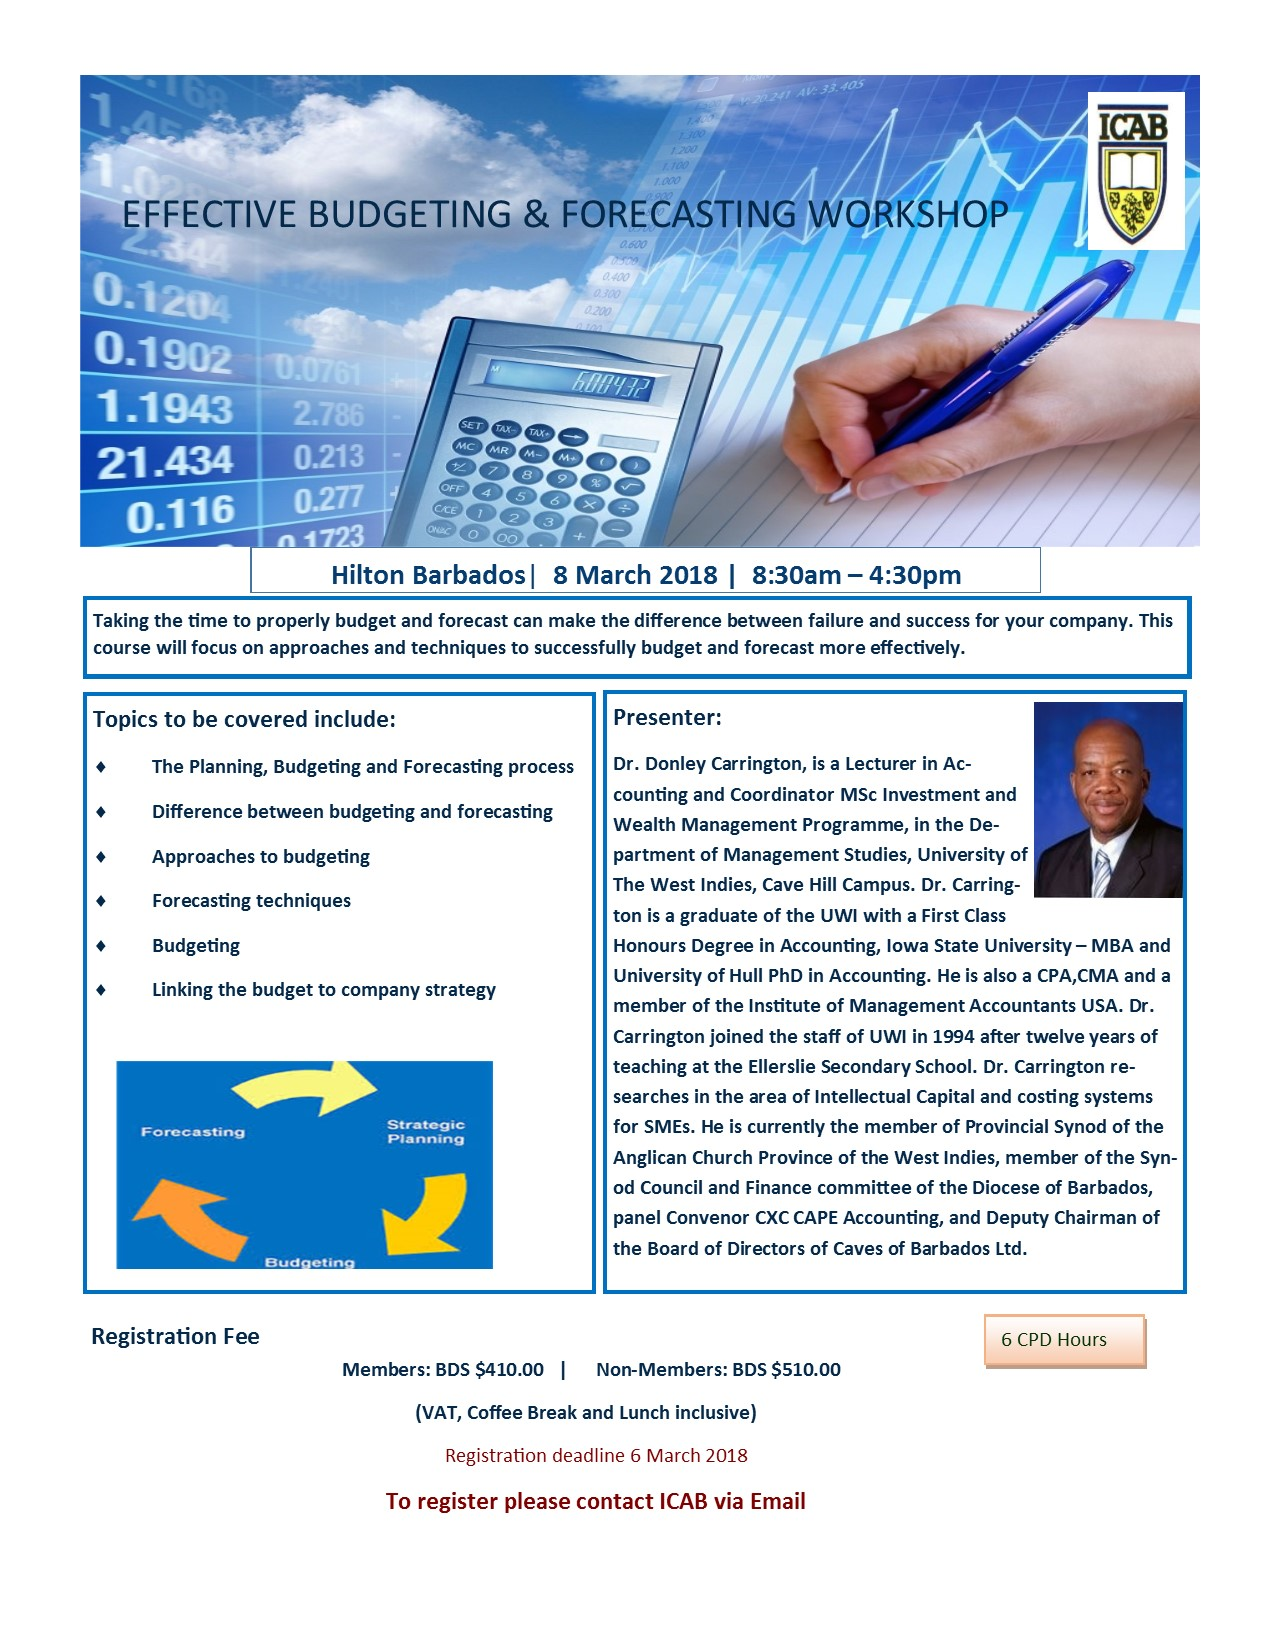 Effective Budgeting and Forecasting Workshop